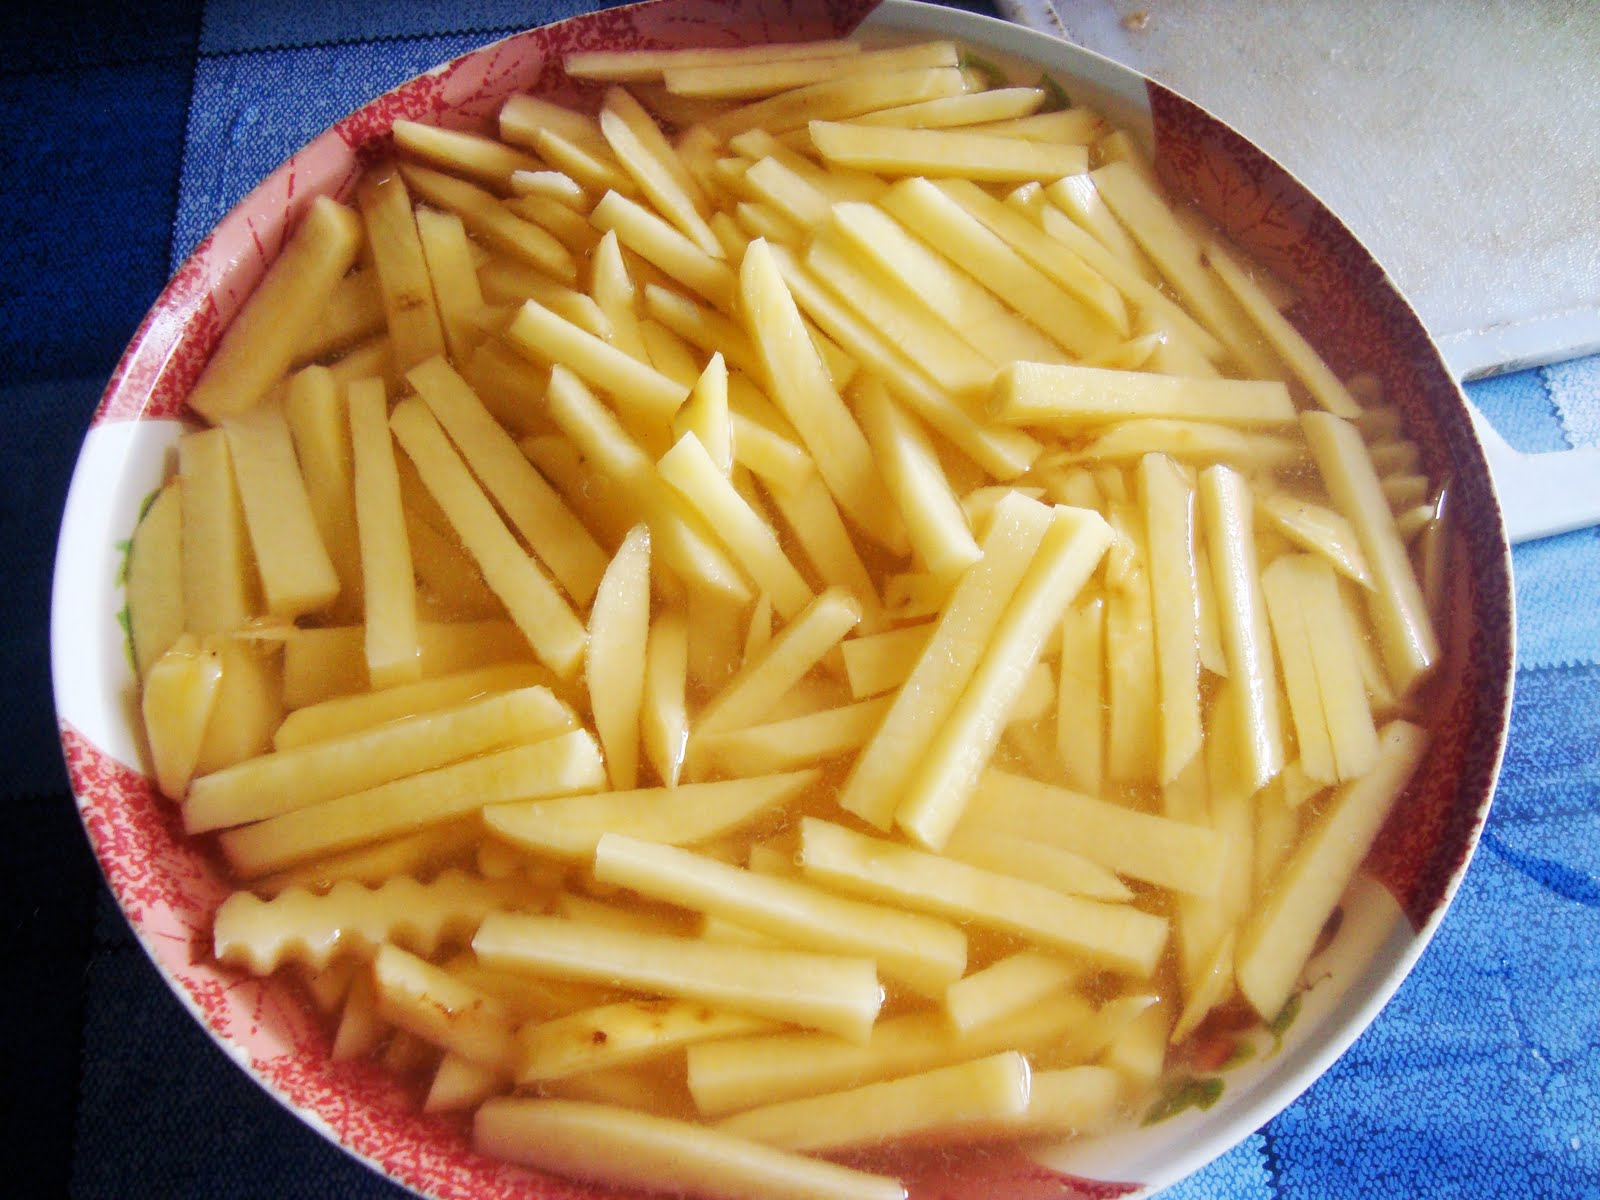 com deep fried french french fries fries hand cut fries homemade fries ...